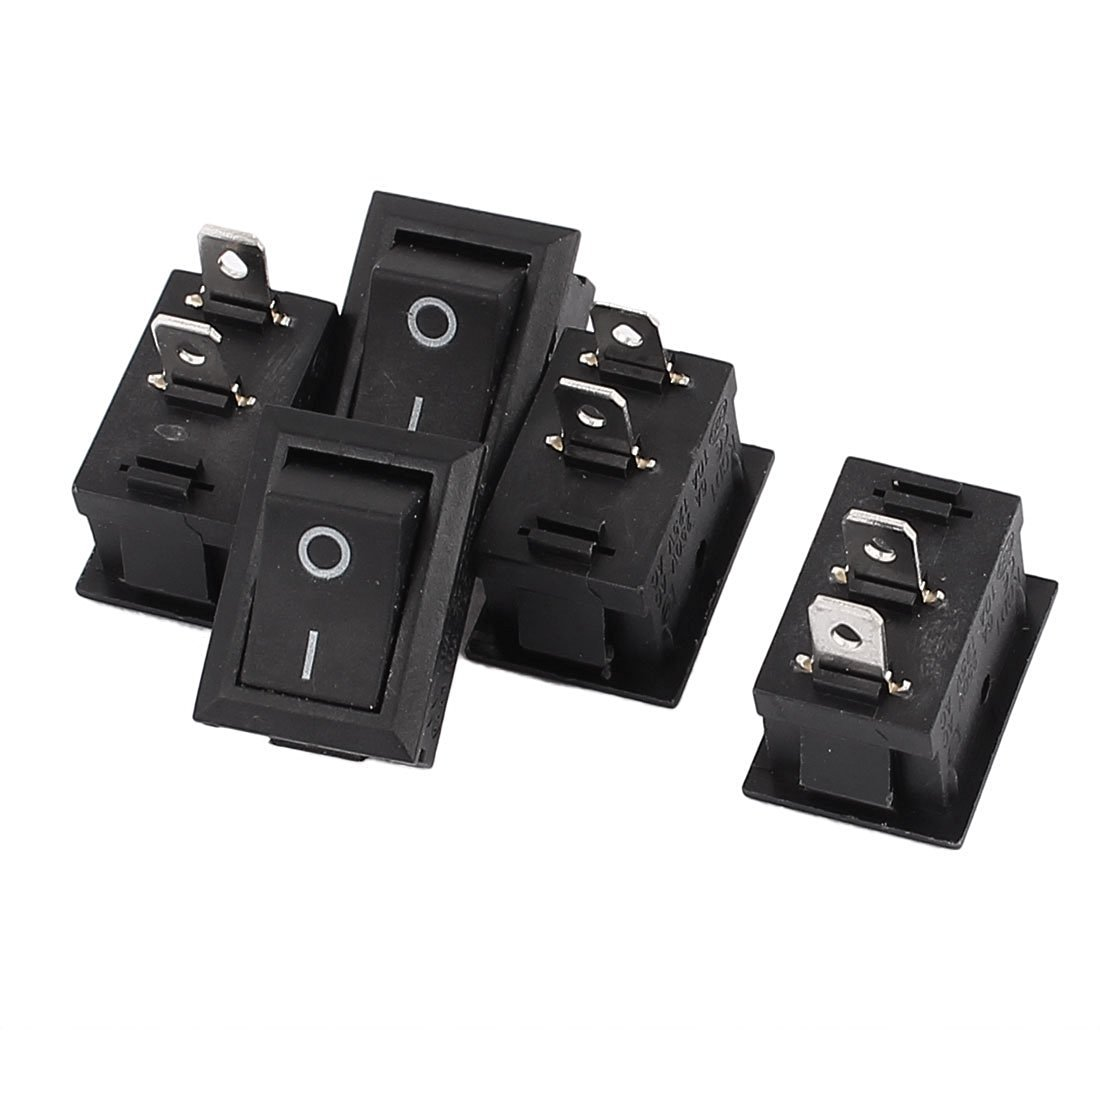 uxcell AC 6A/250V 10A/125V ON-OFF I/O SPST Boat Rocker Switch Black 5 Pcs